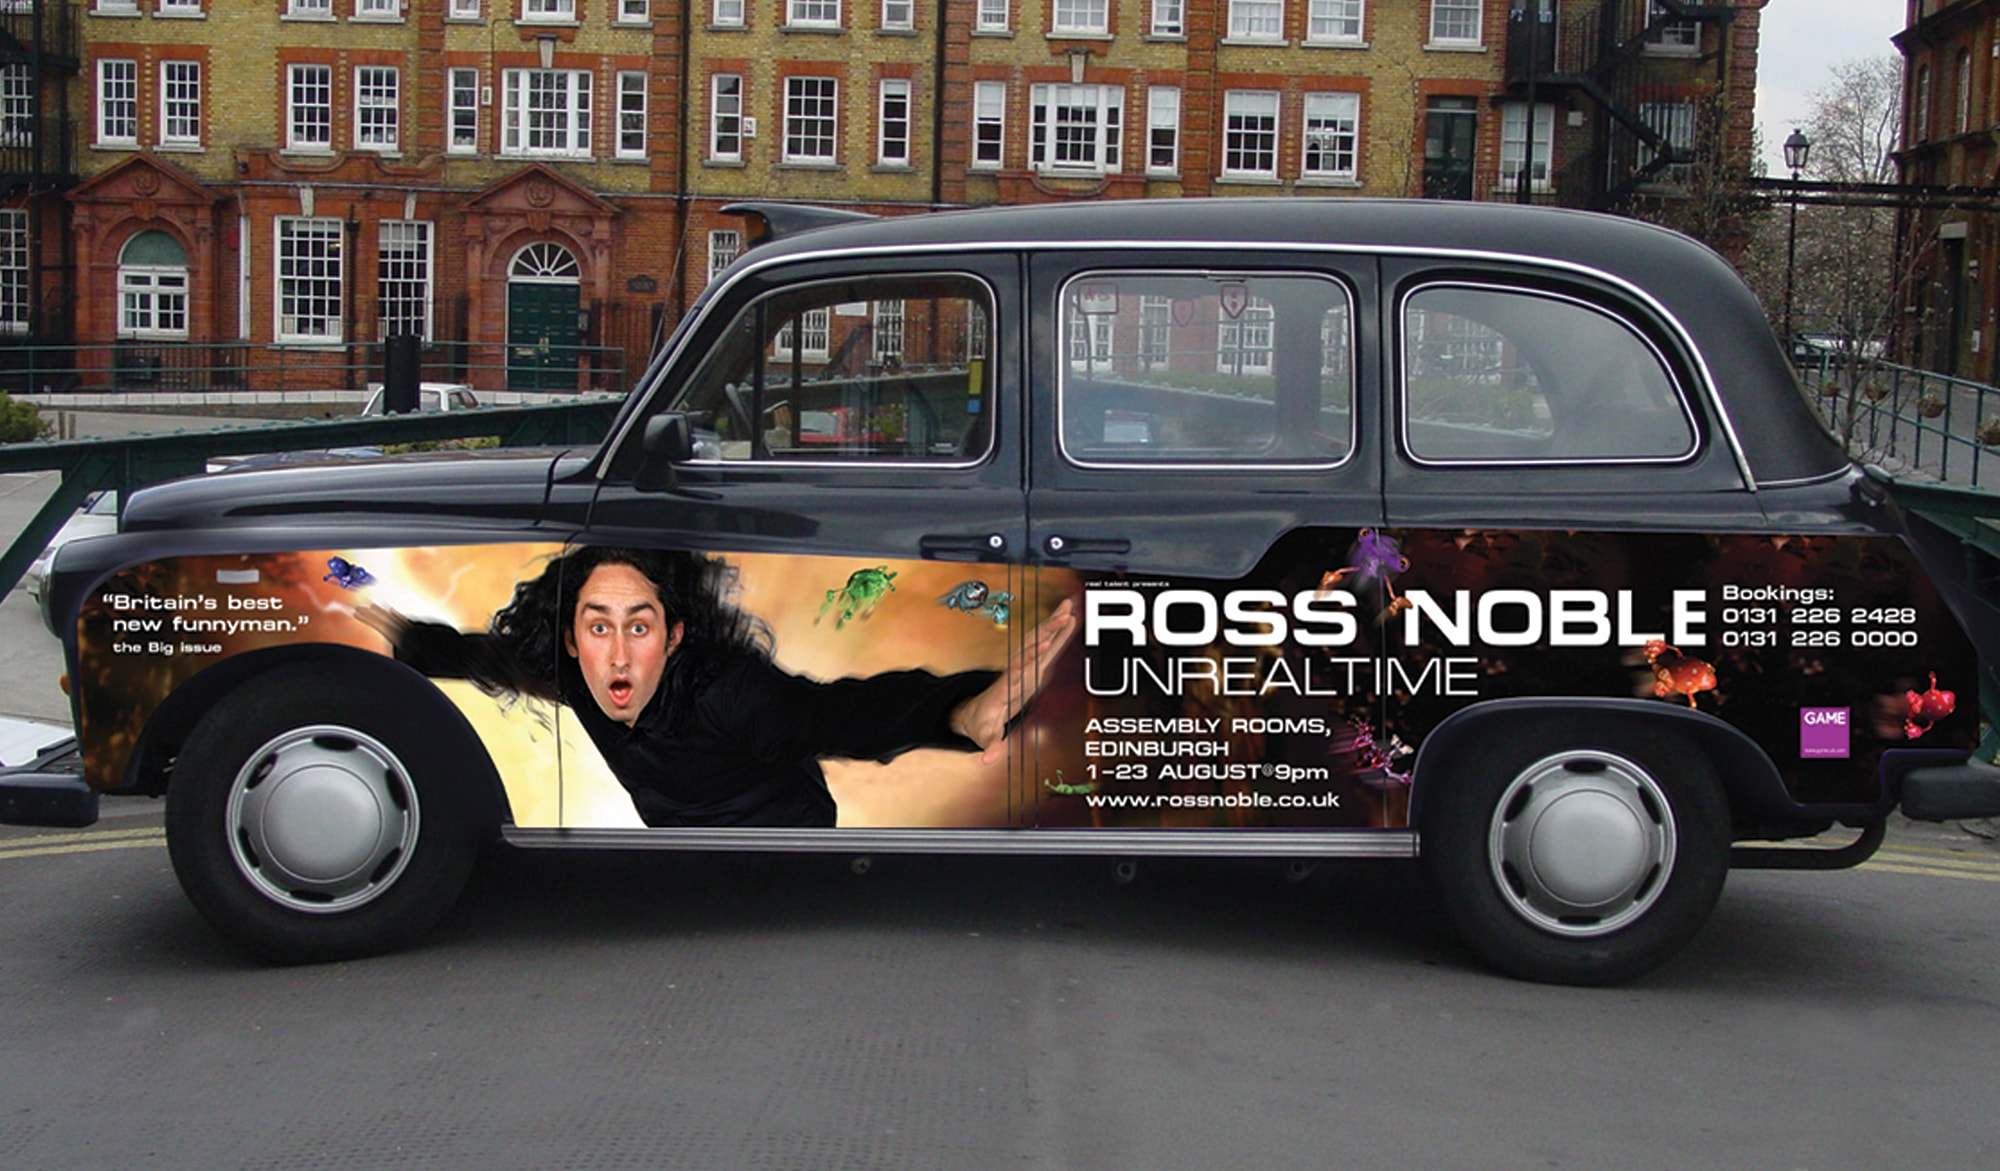 Ross Noble - Unrealtime DVD - advertising